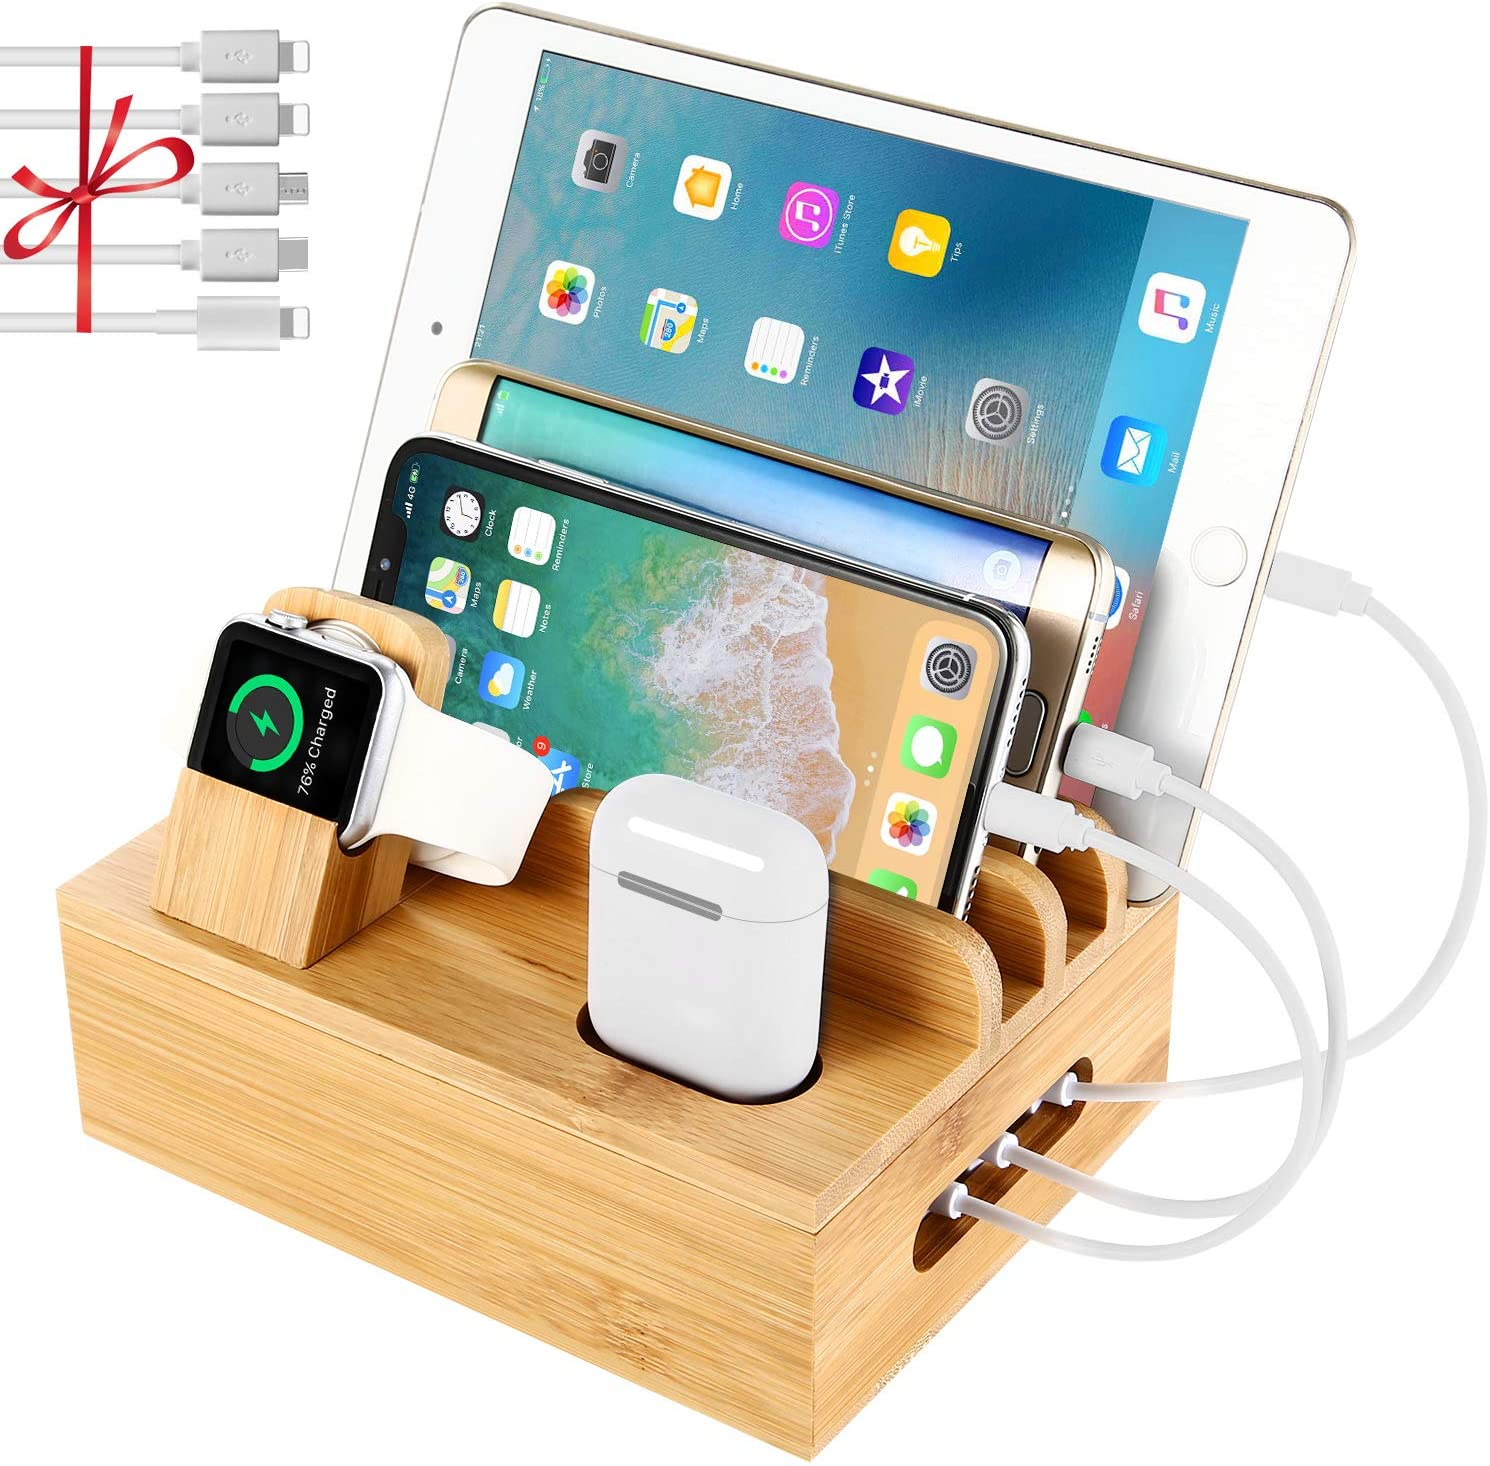 Universal Mobile Phones and Tablets Charging Station for Multiple Devices Wood Dock Organizer Charging Station with Apple Watch iPhone iPad Compatible with Anker RAVpower 4//5//6-Port USB Chagrer